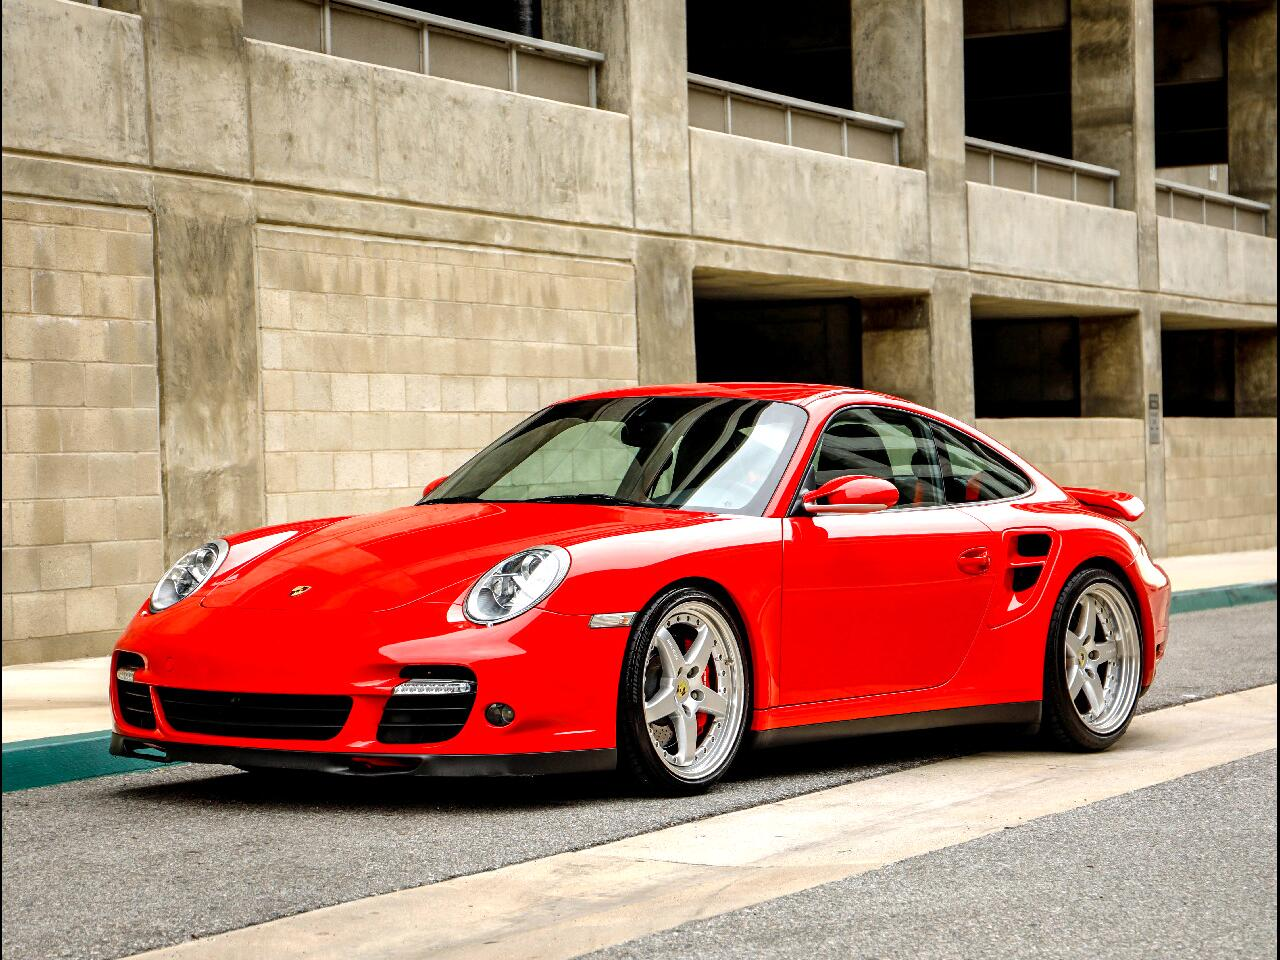 2007 Porsche 911 Turbo 6 Speed Coupe